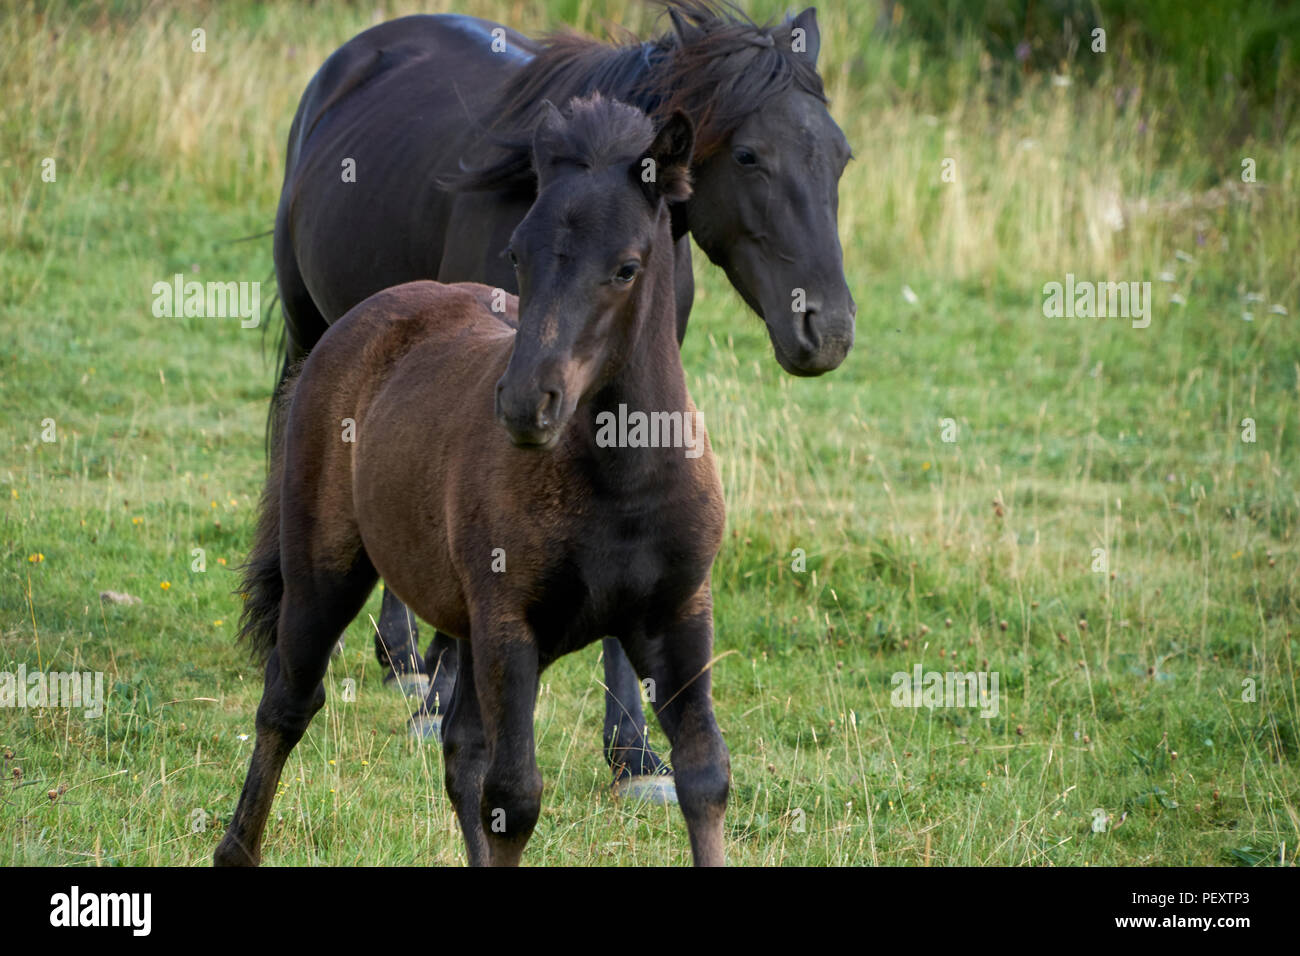 Pottoka mare and foal, wild horse reintroduction for ecological restoration and rewilding, conservation - Stock Image